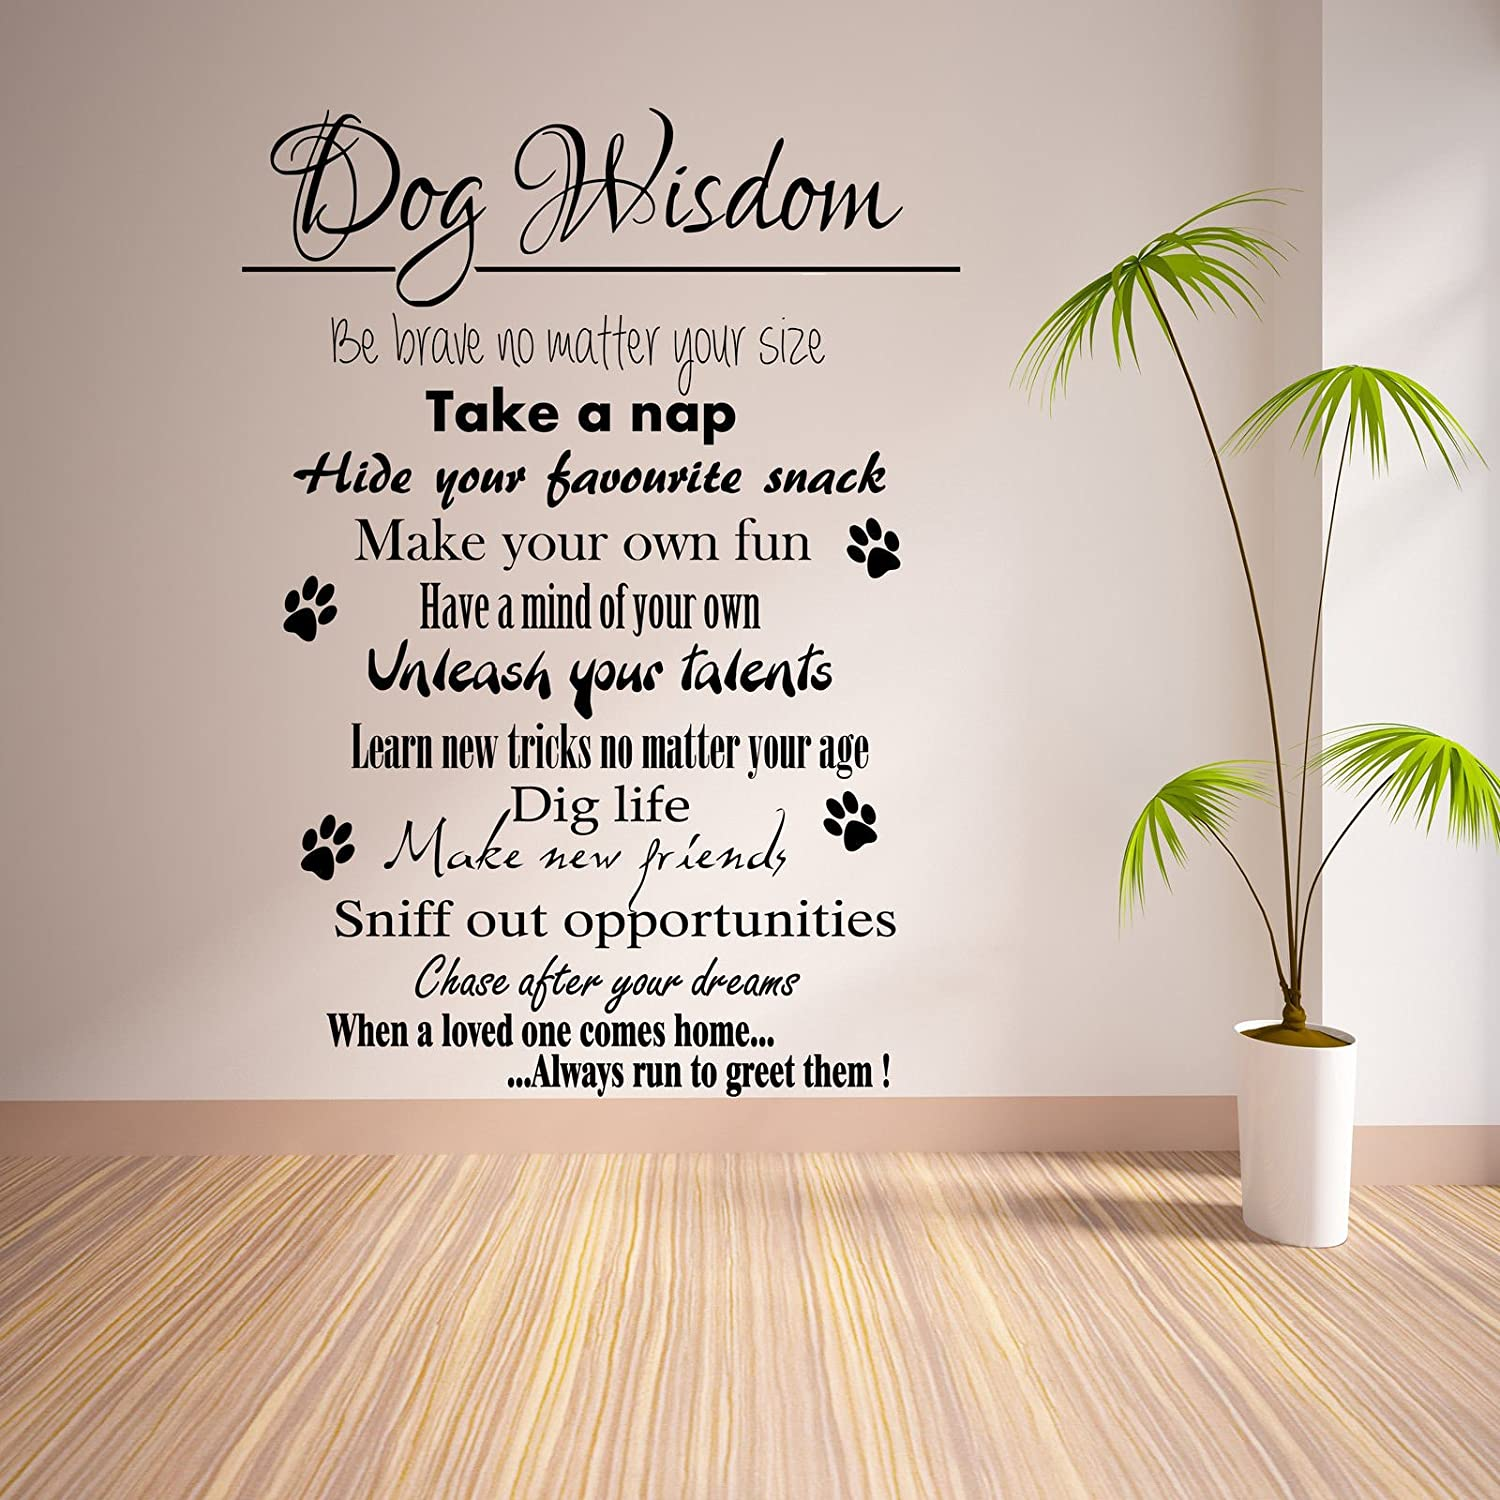 Amazon.com: HUANYI Dog Wisdom ART Wall Quote STICKER TRANSFER Vinyl DECAL:  Home U0026 Kitchen Part 60